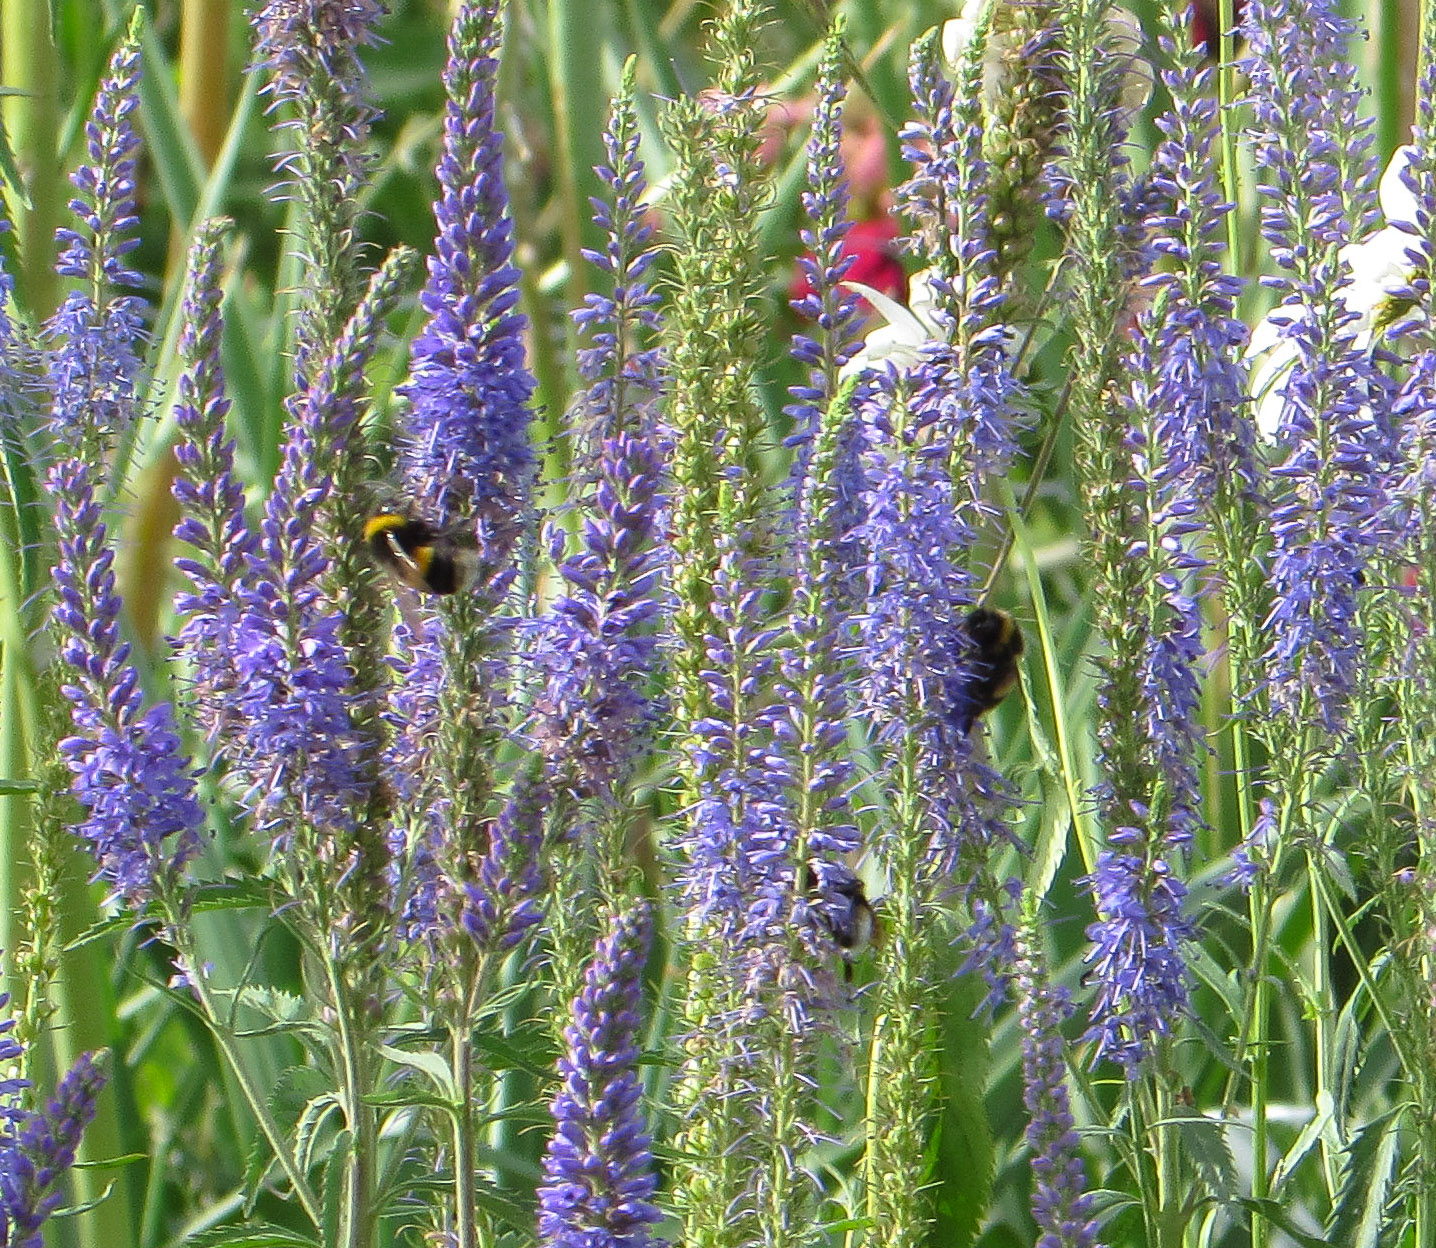 veronica spicata - supporting bees in spite of the dry weather